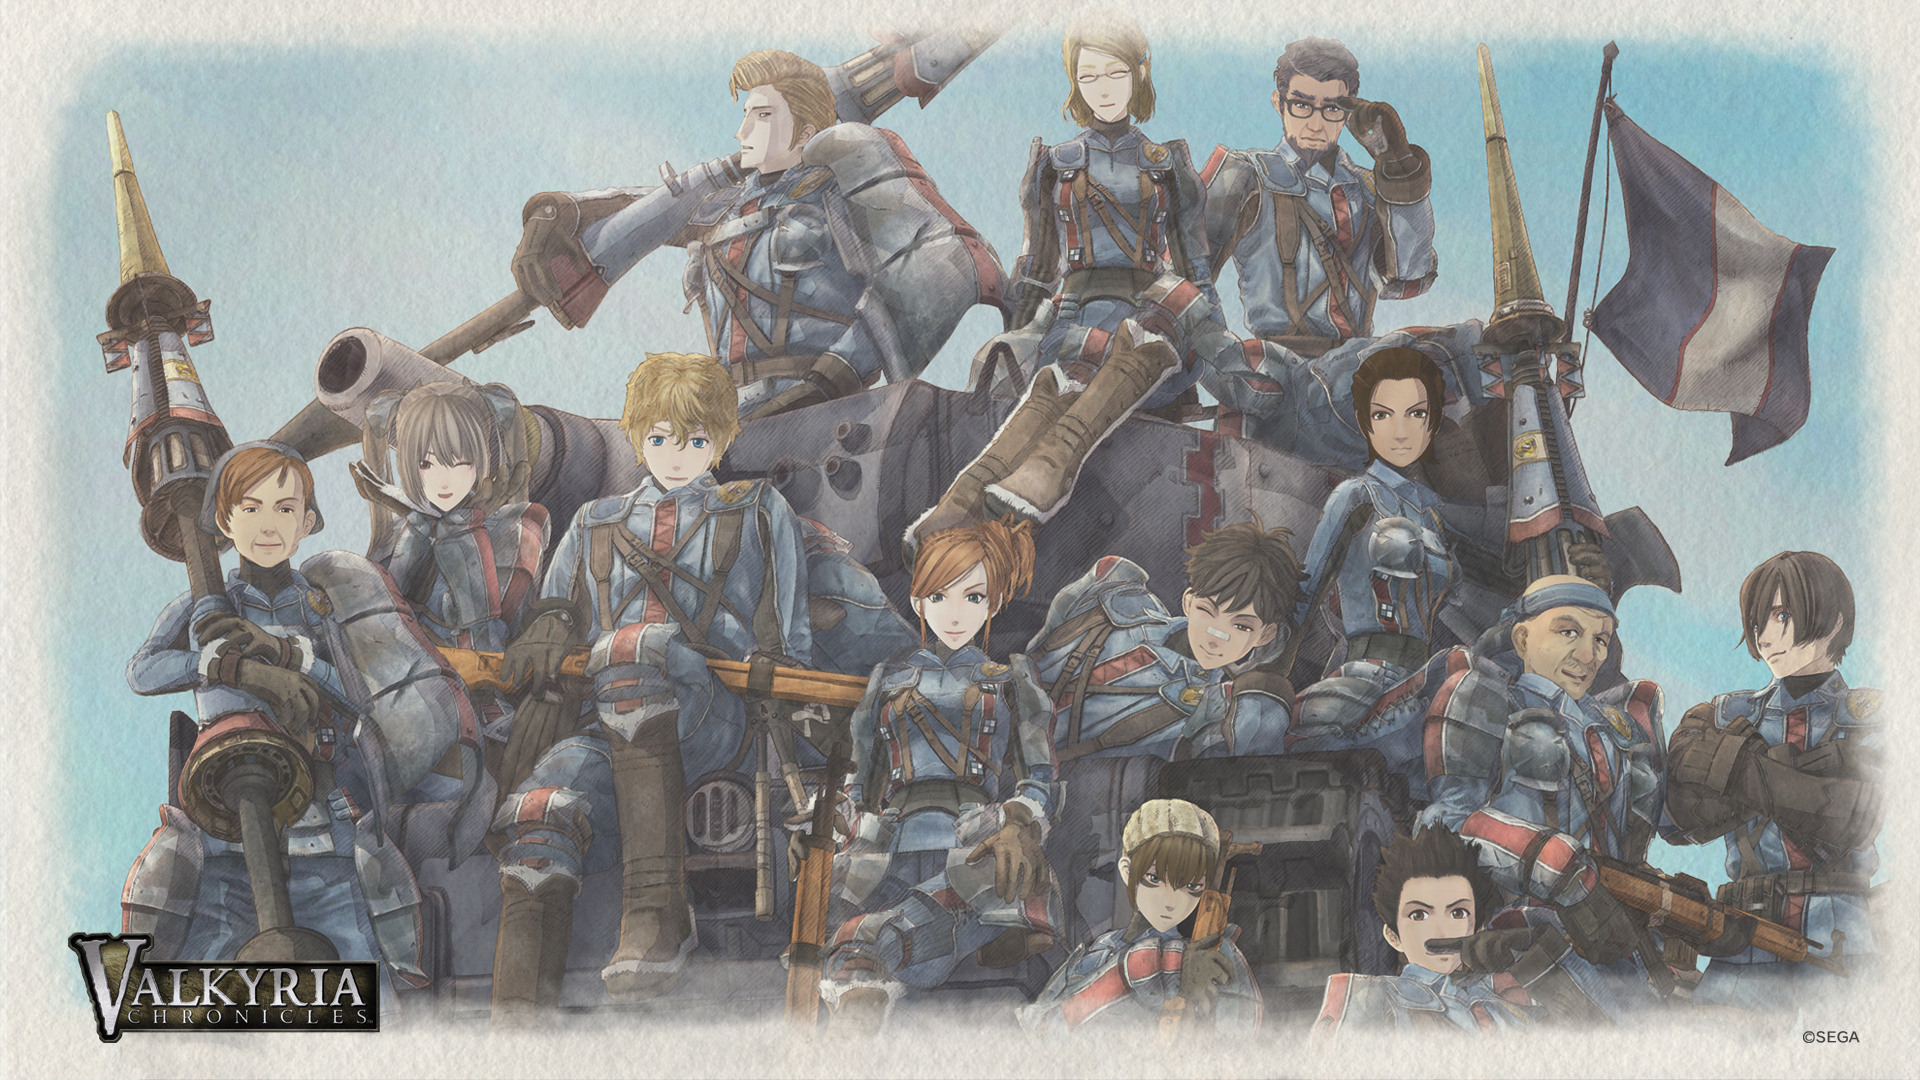 Valkyria Chronicles 2 Wallpapers